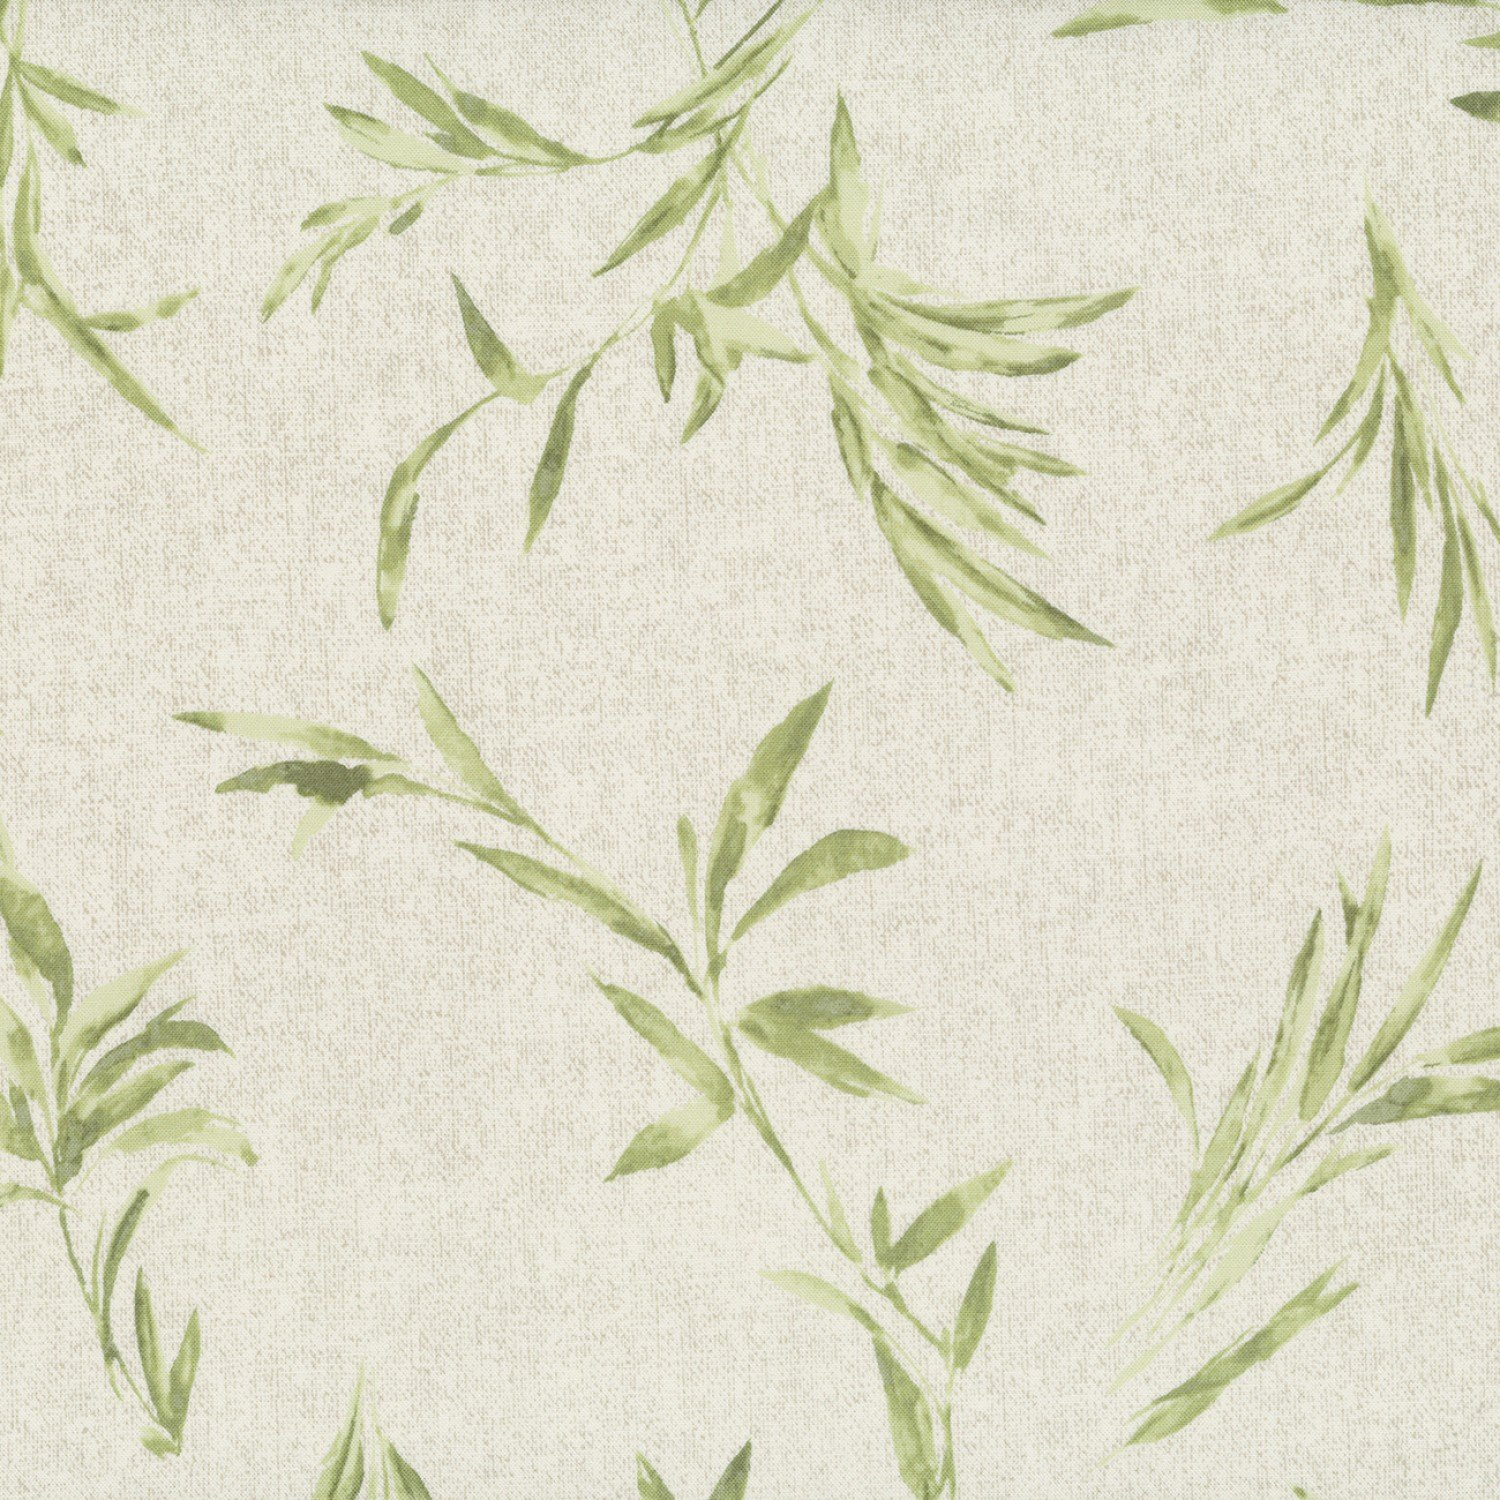 Centenary Collection - Beige w/Green Leaves